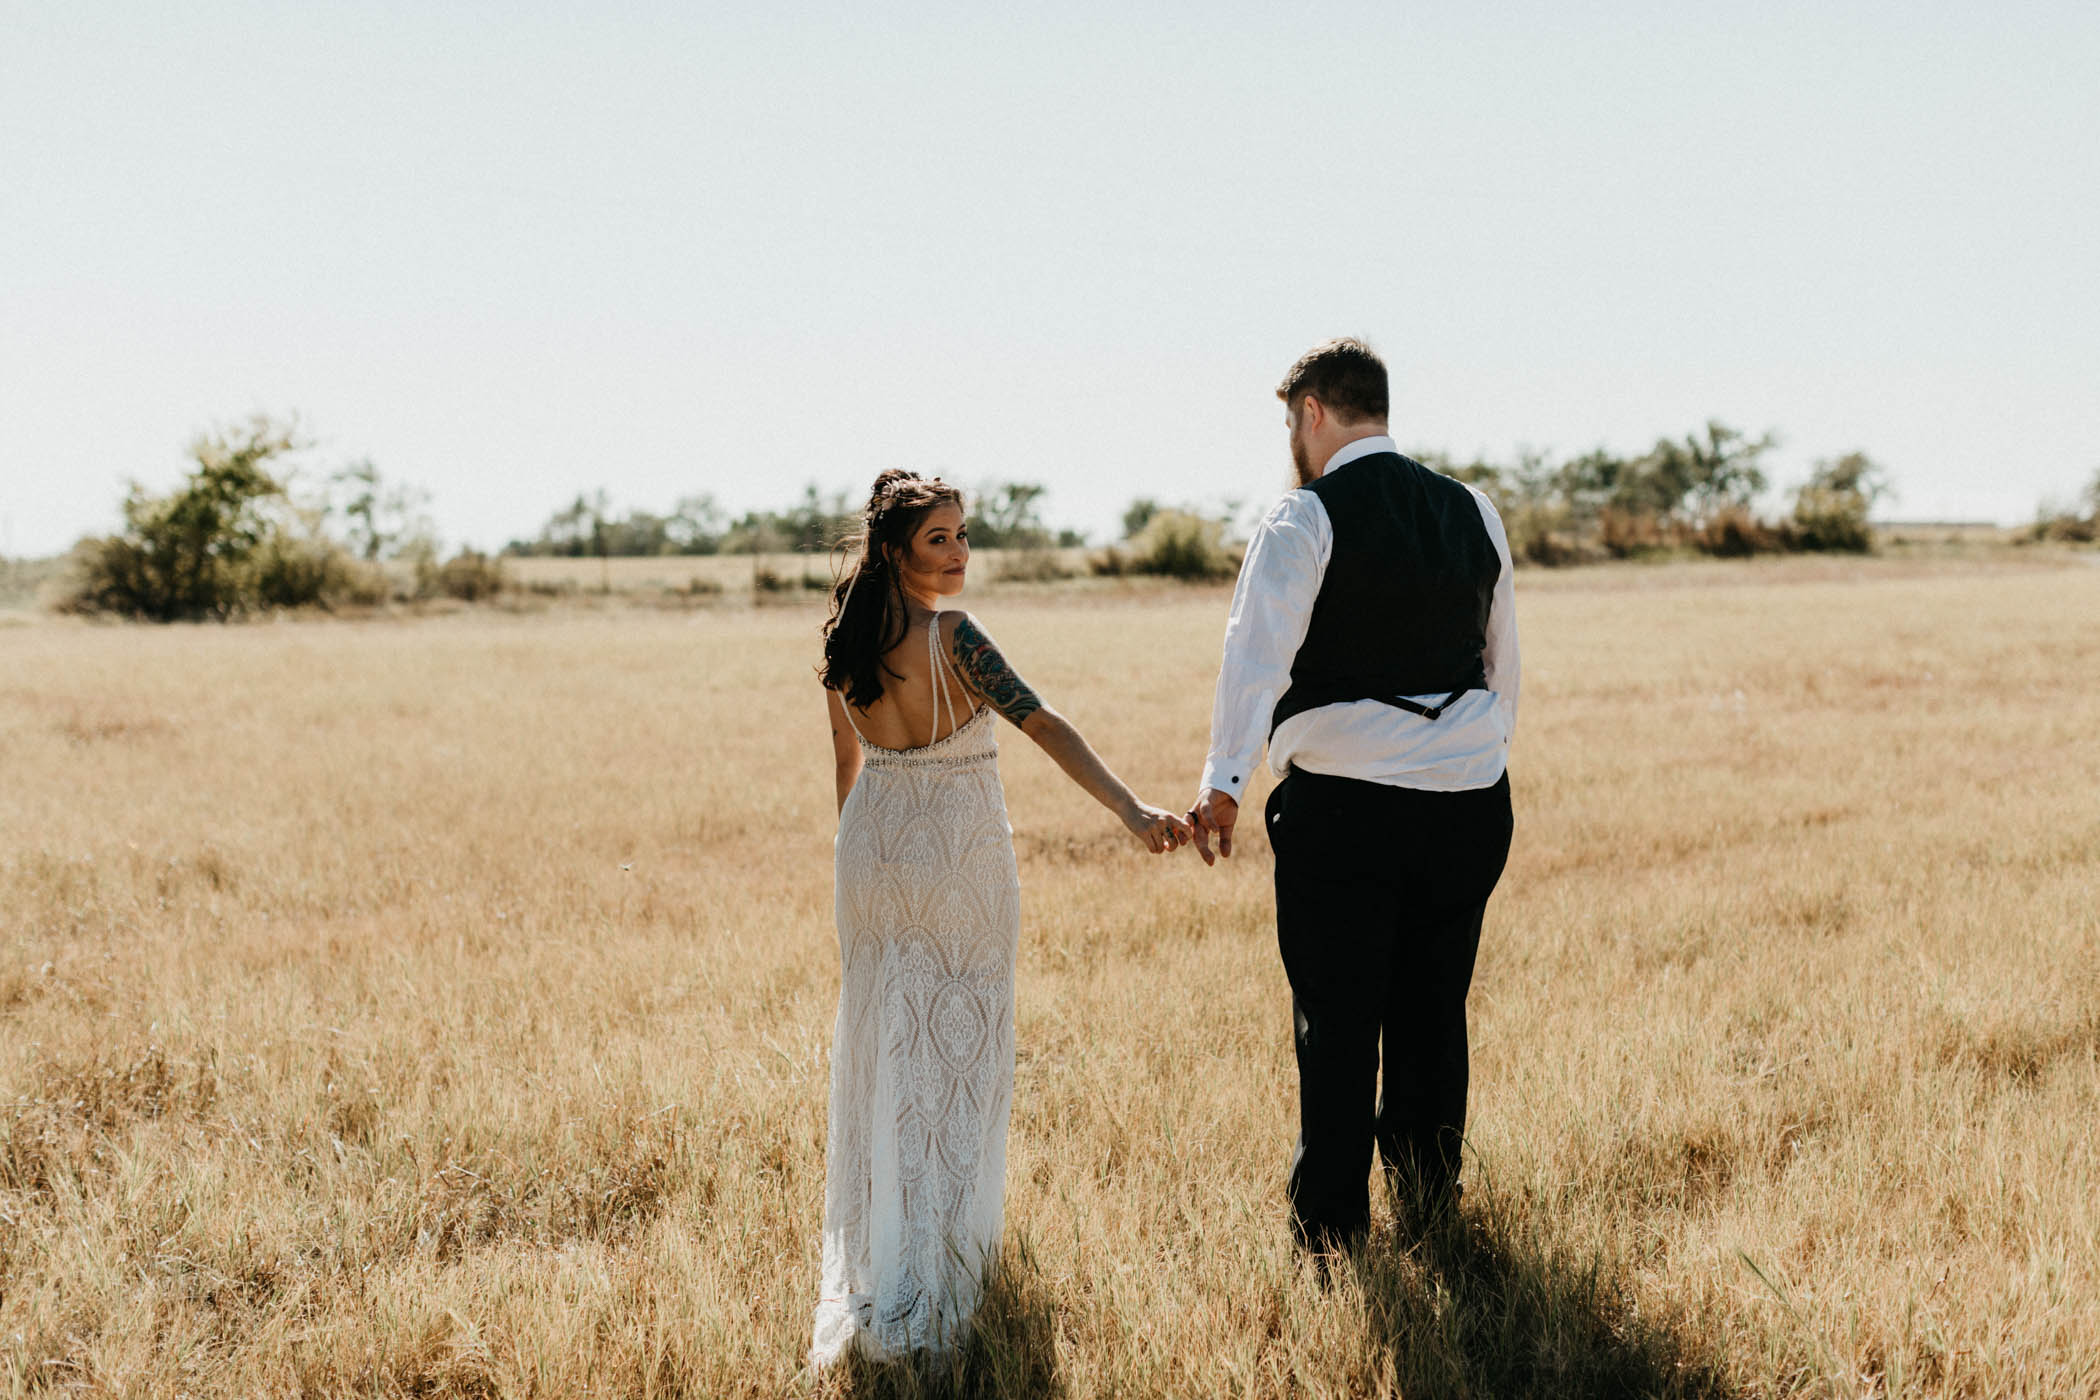 Bride and groom holding hands and walking in a field for bride and groom portraits